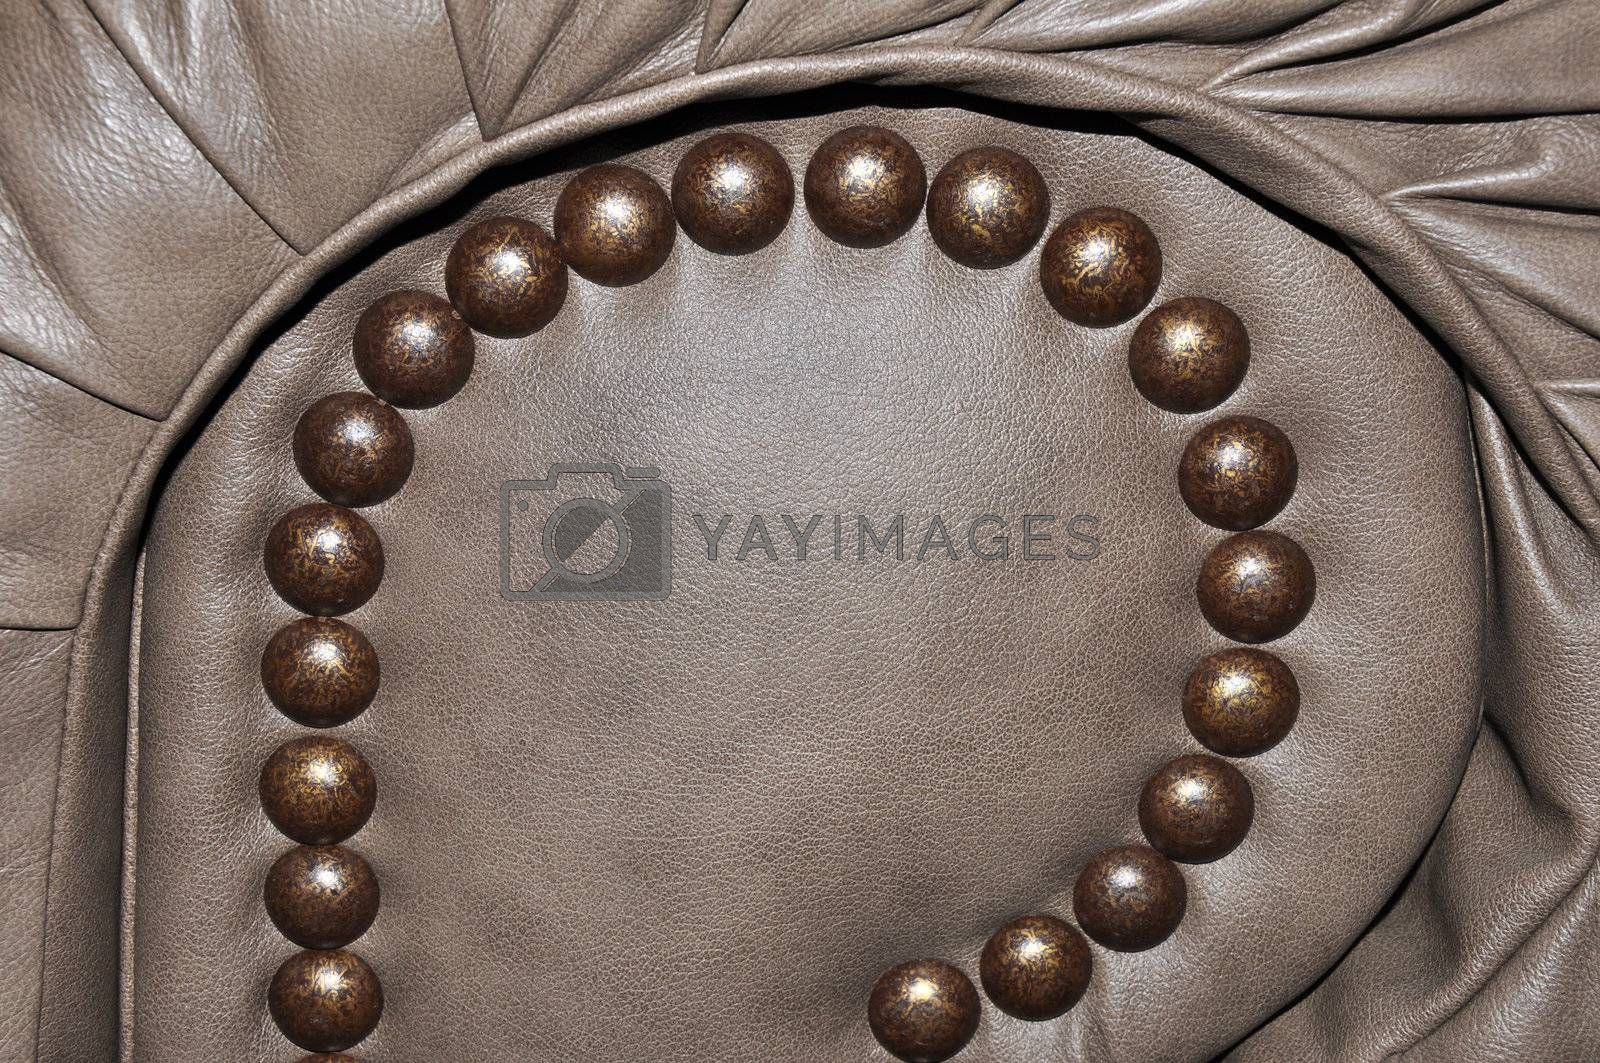 closeup view of tacks on a brown leather chair